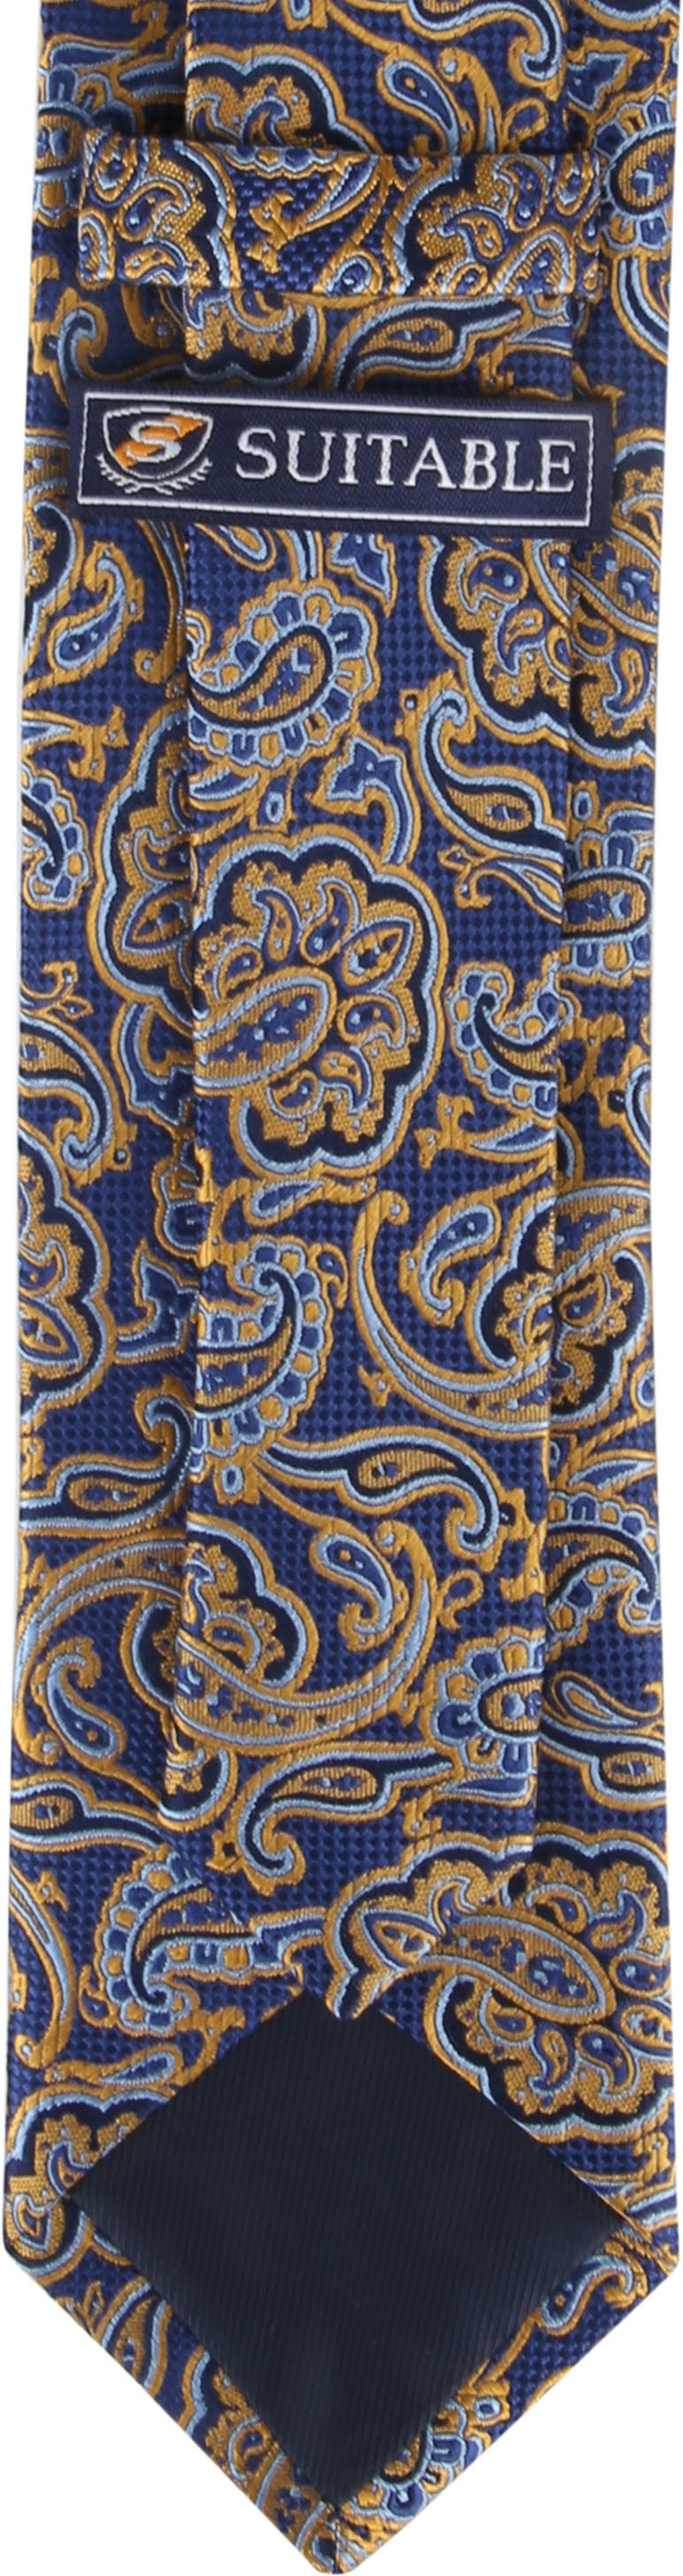 Suitable Krawatte Paisley Navy Gold Foto 2